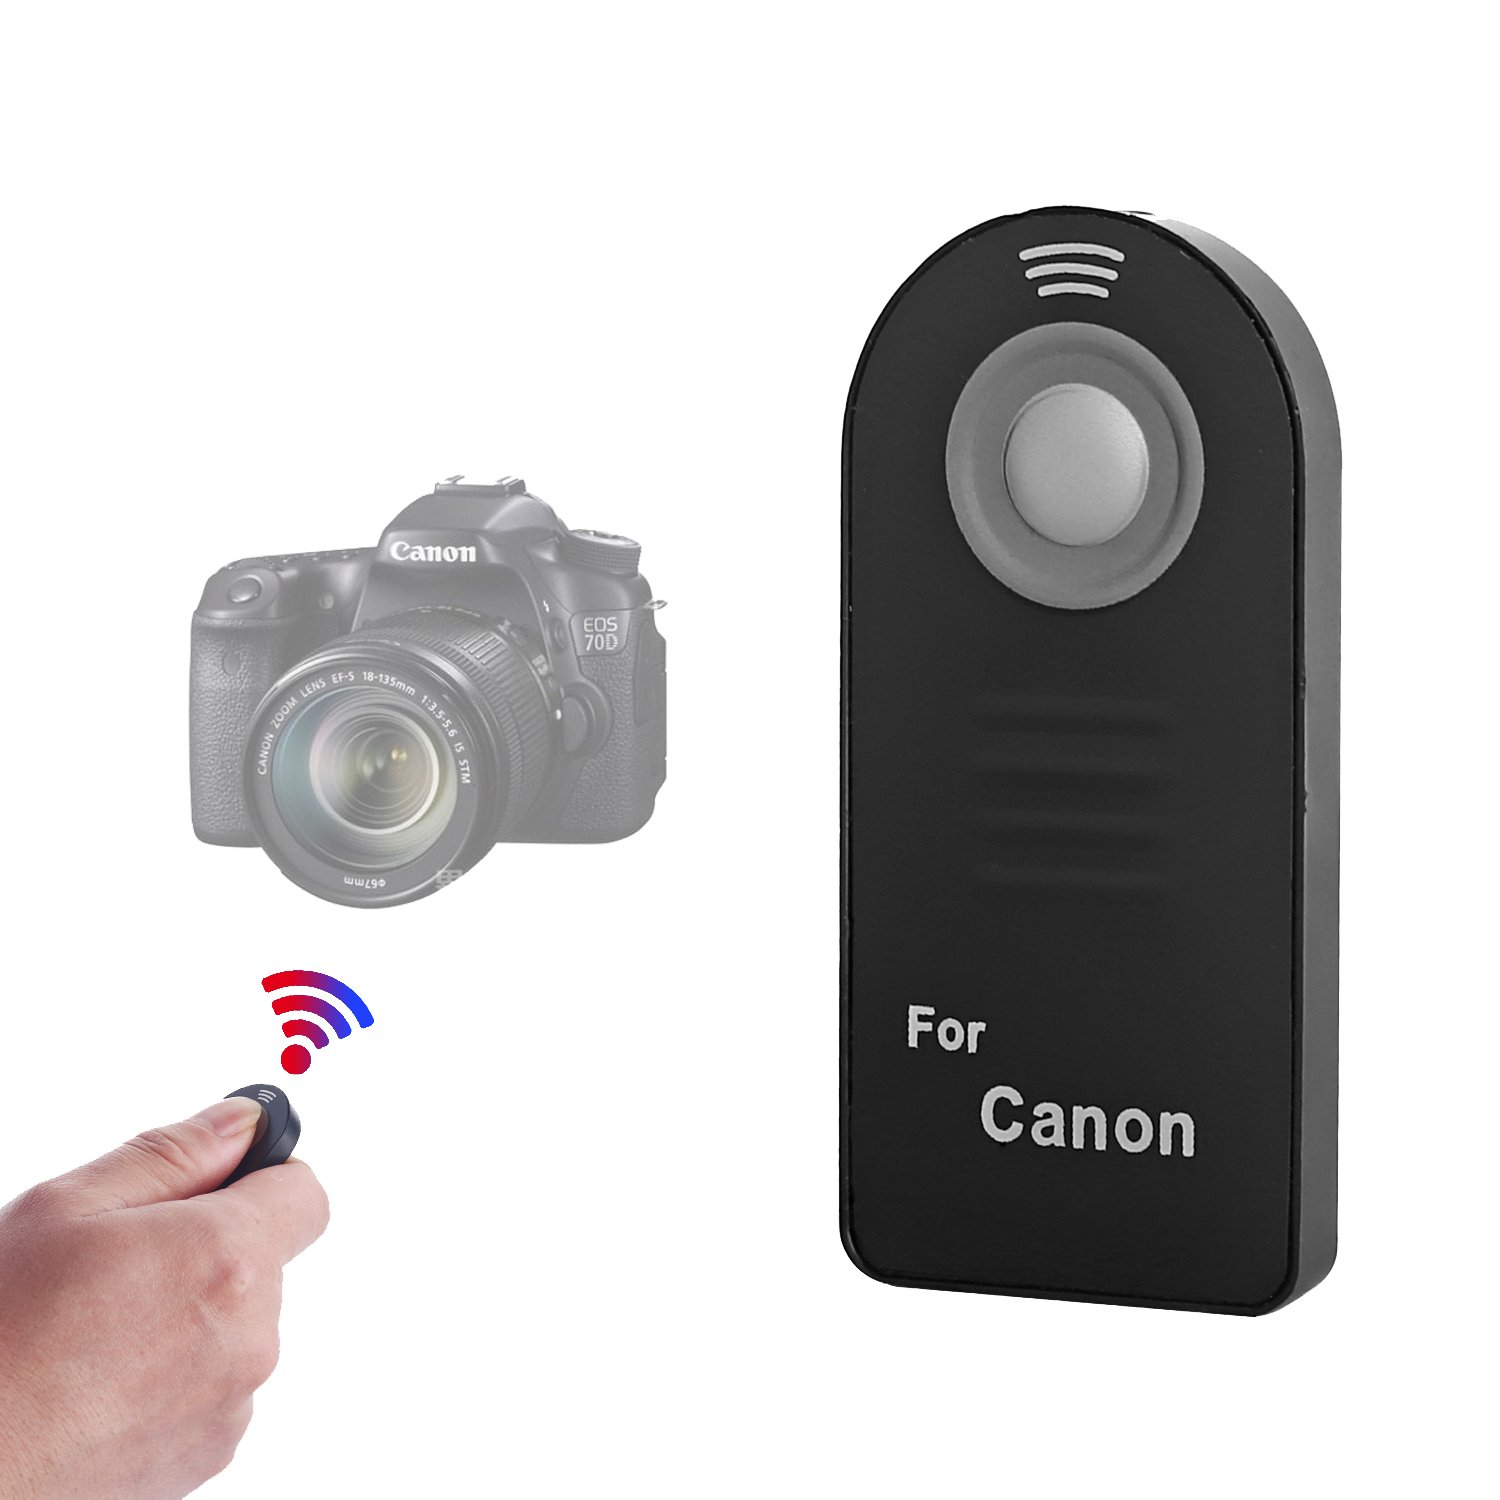 IR Wireless Shutter Remote Control Compatible with Canon EOS 6D Mark II, 5D Mark IV III II, 5DS 5DR, 7D Mark II, 77D 6D 7D 80D 70D 60Da 60D SL1 /Rebel T7i T6s T5i T4i T3i T2i T1i XSi XTi/M6 M5 M3 WAAO